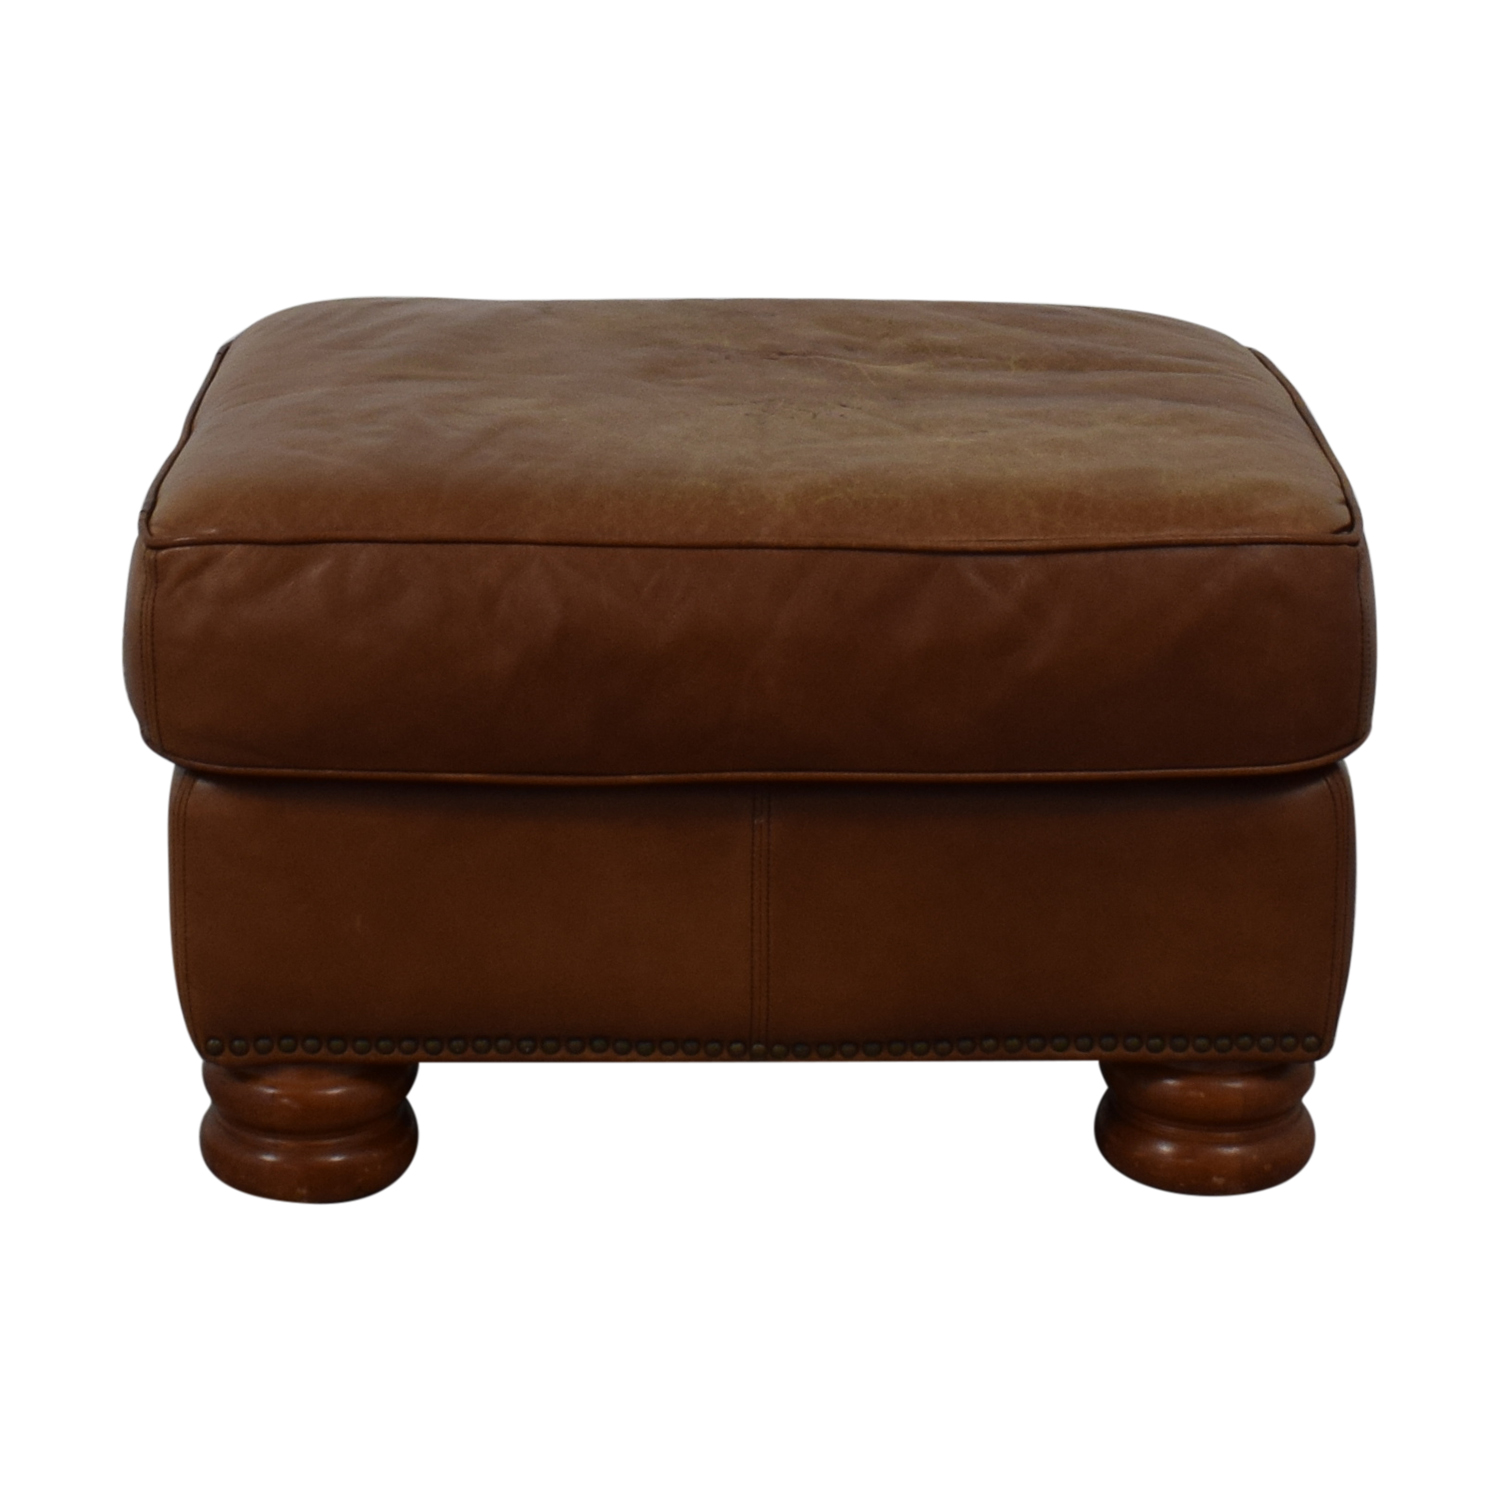 shop Thomasville Thomasville Brown Leather Ottoman online